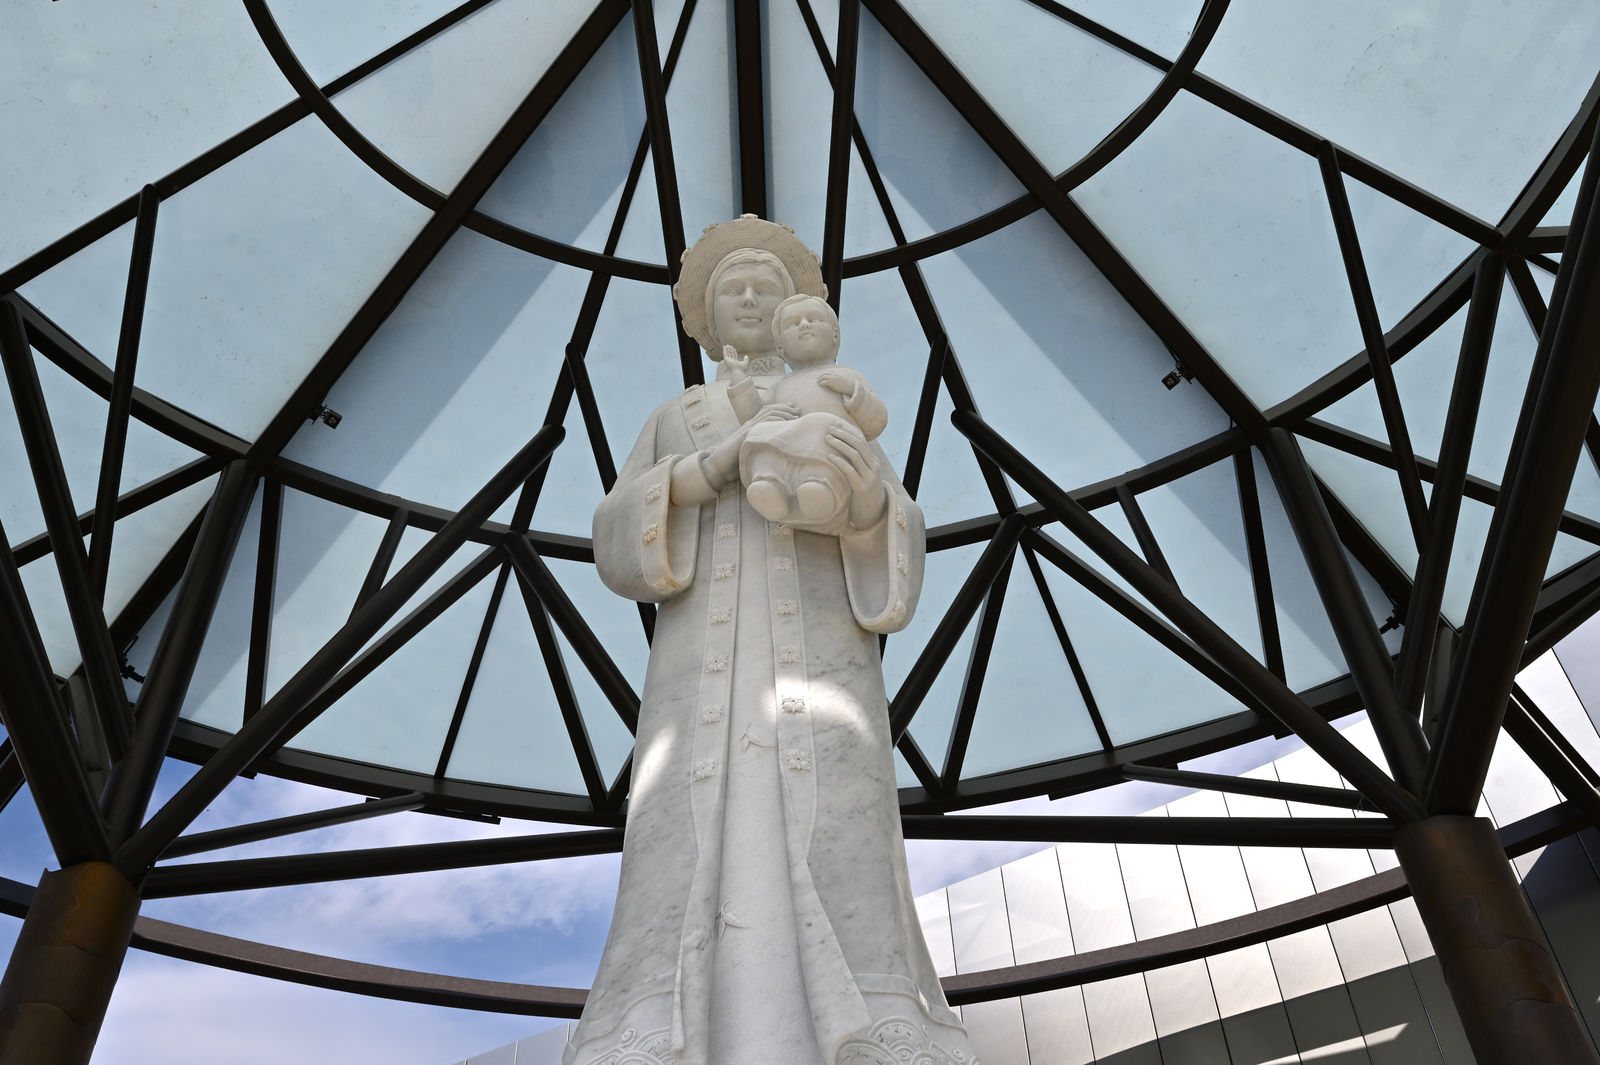 The Our Lady of La Vang Shrine, with a canopy-like design, was designed to evoke the remote rainforest setting of the 1798 Marian apparition. Photo courtesy Diocese of Orange.